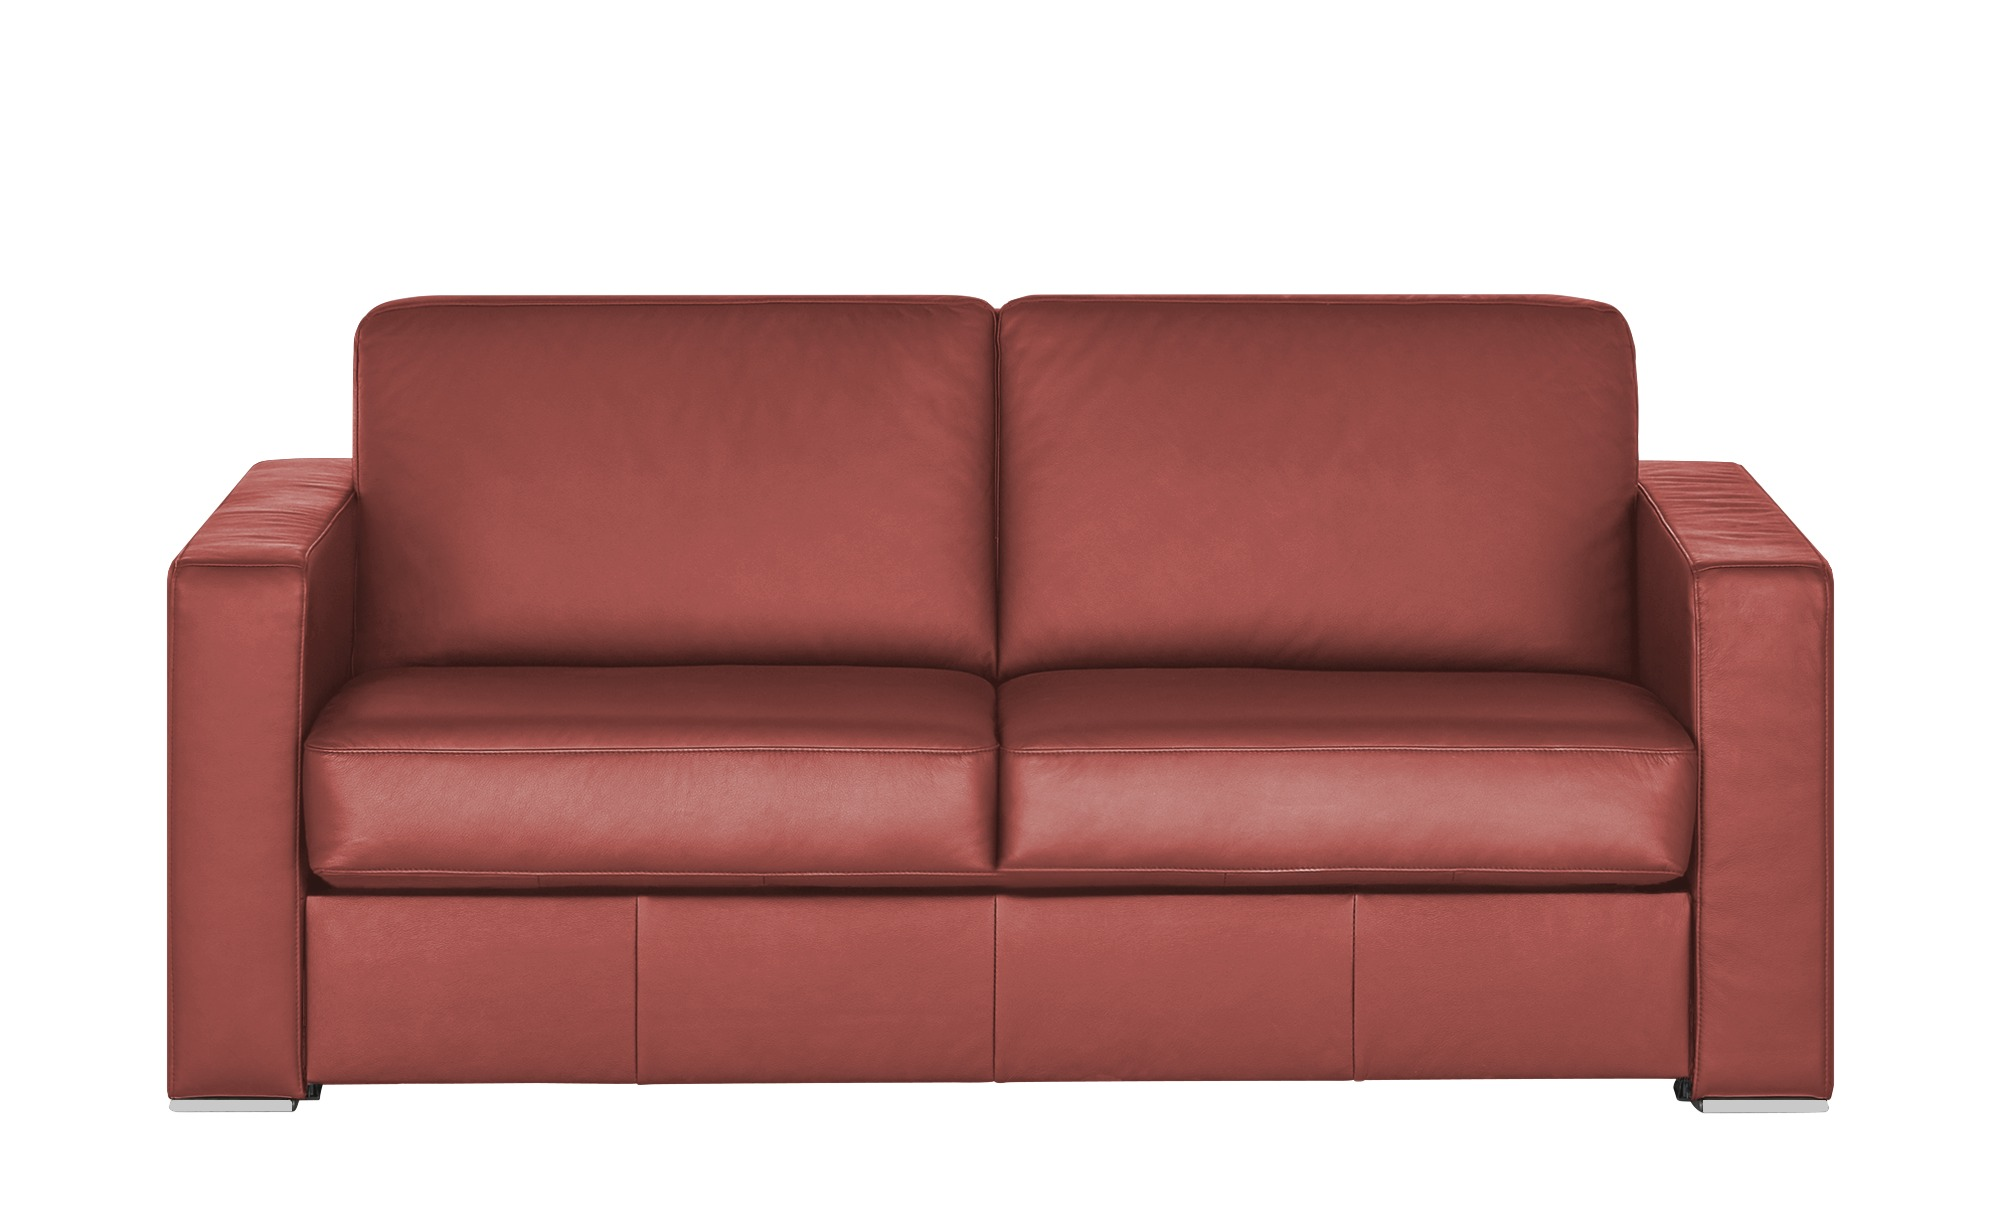 Betty Schlafsofa Betty Rot Mit Gelplus Matratze